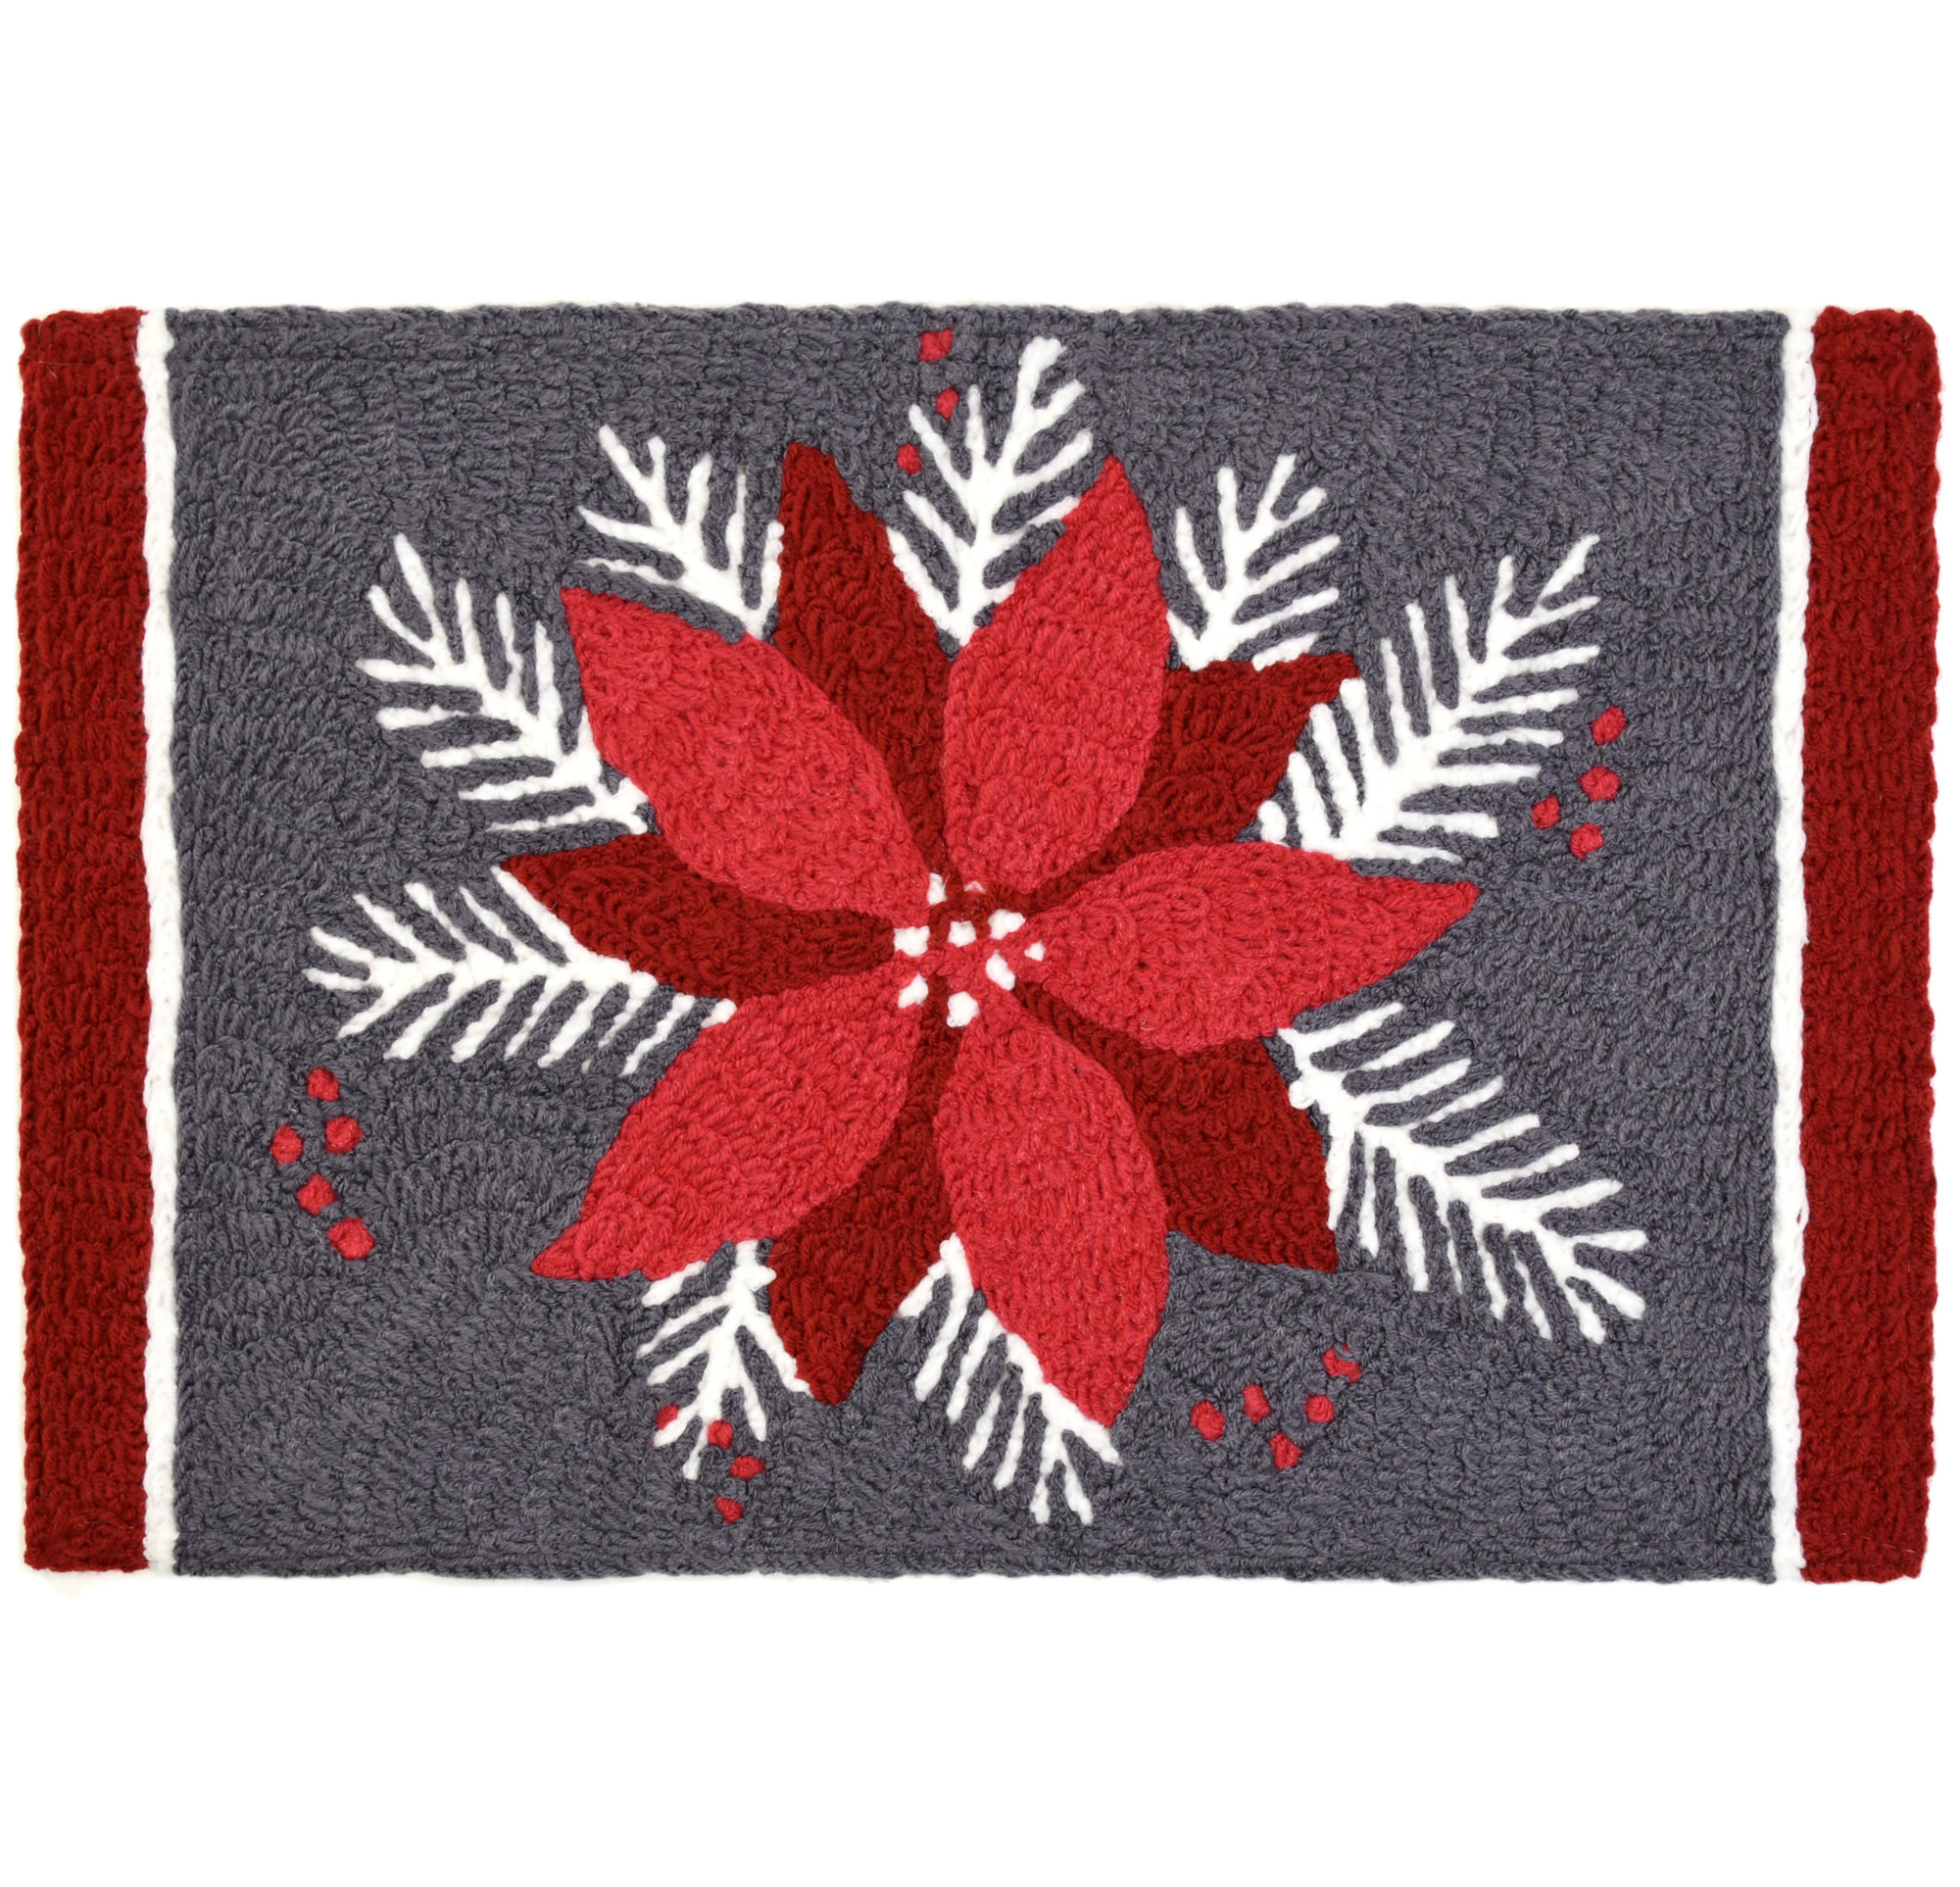 Poinsettia on Gray Christmas Rug with Red Flower 20 x 30 Jellybean Accent Rug